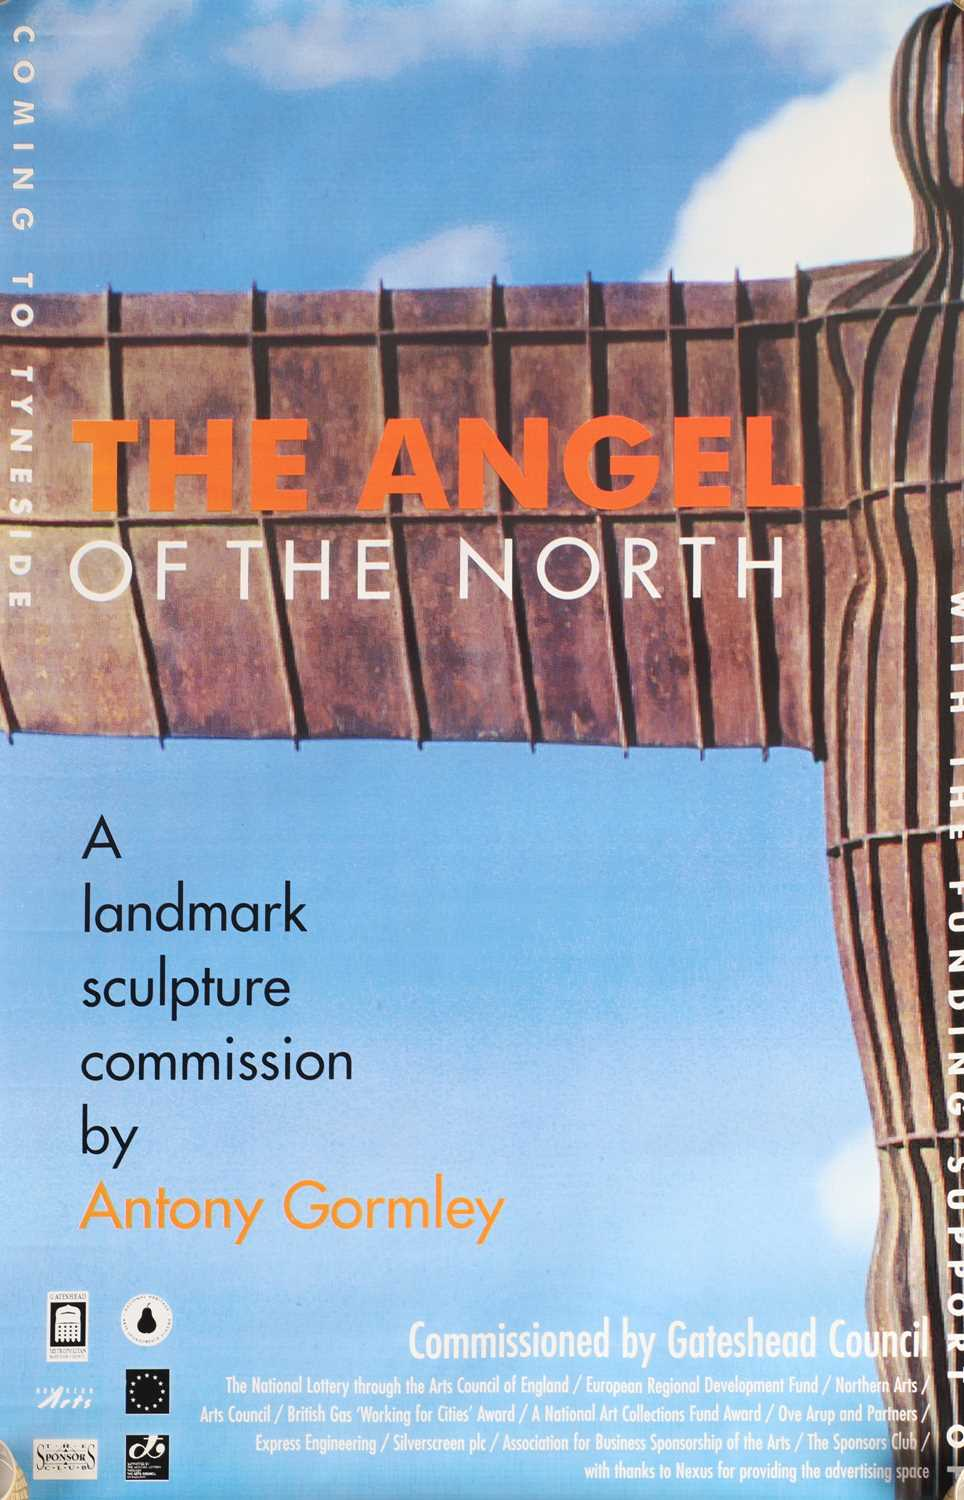 After Anthony Gormley - Poster - Image 3 of 3